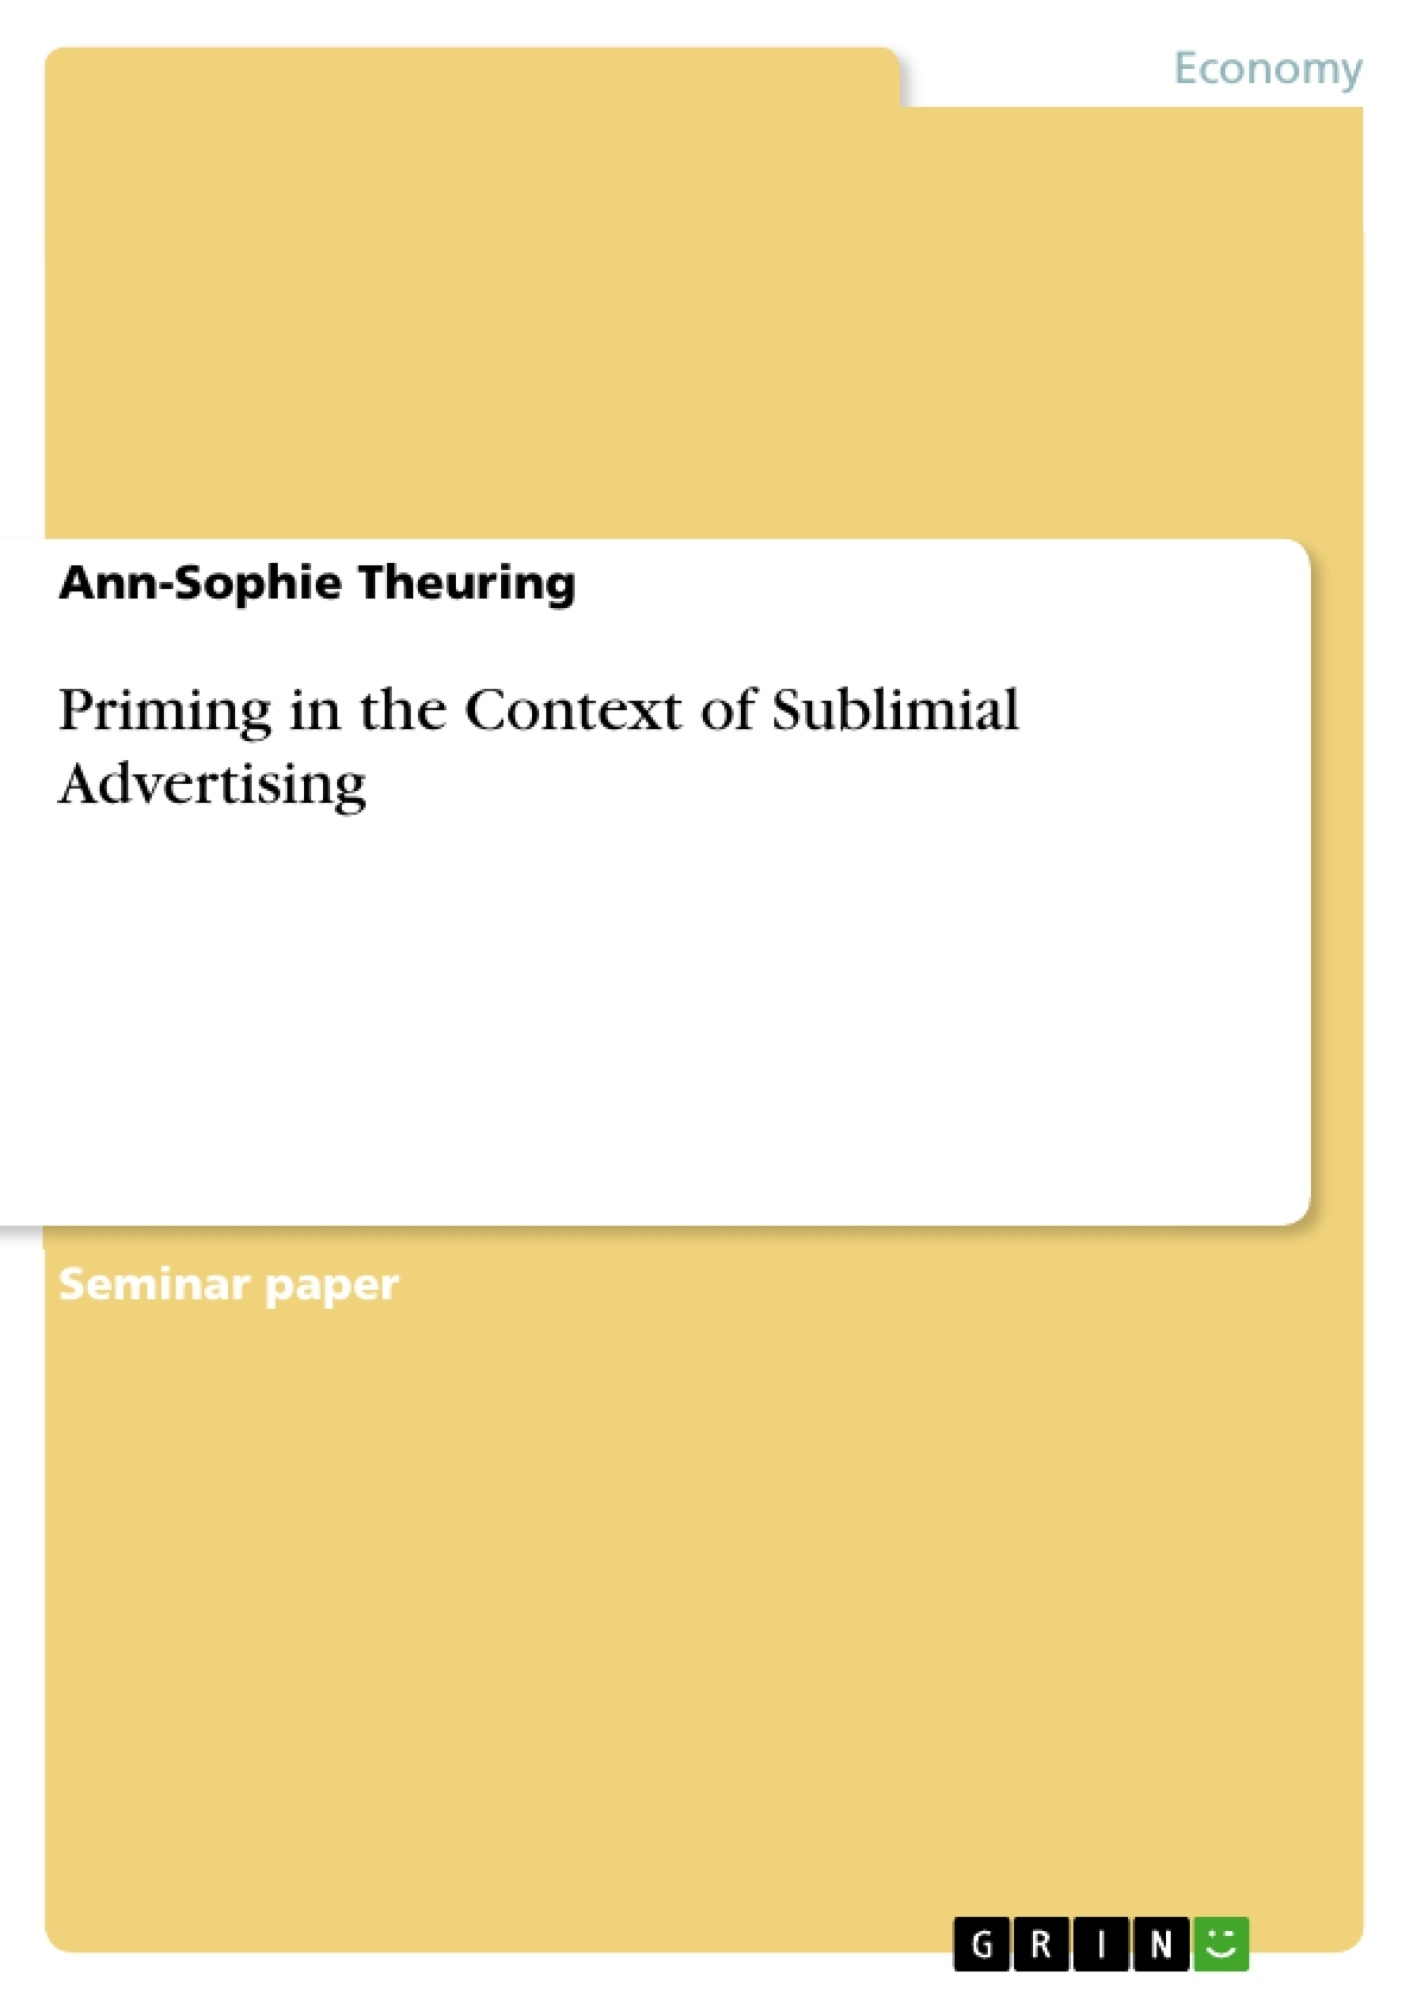 Title: Priming in the Context of Sublimial Advertising